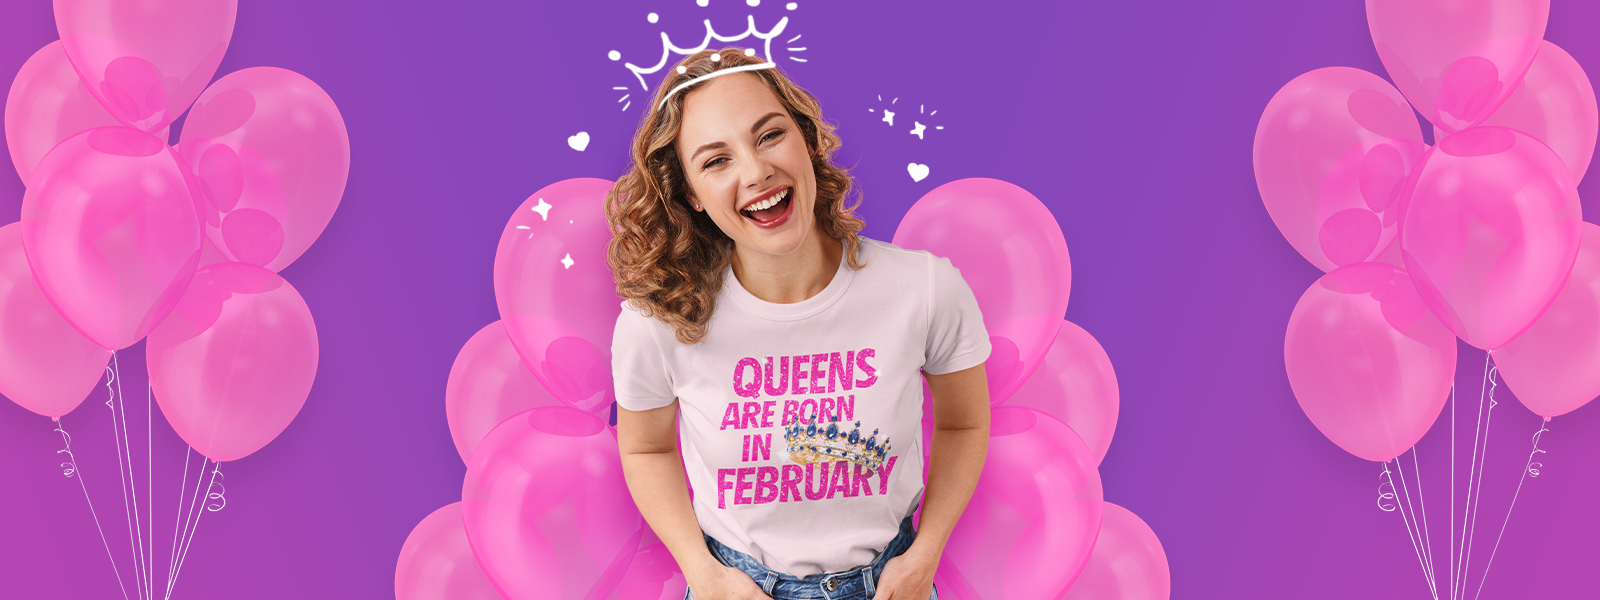 How to Get Fabulous February Birthday Gifts on a Budget